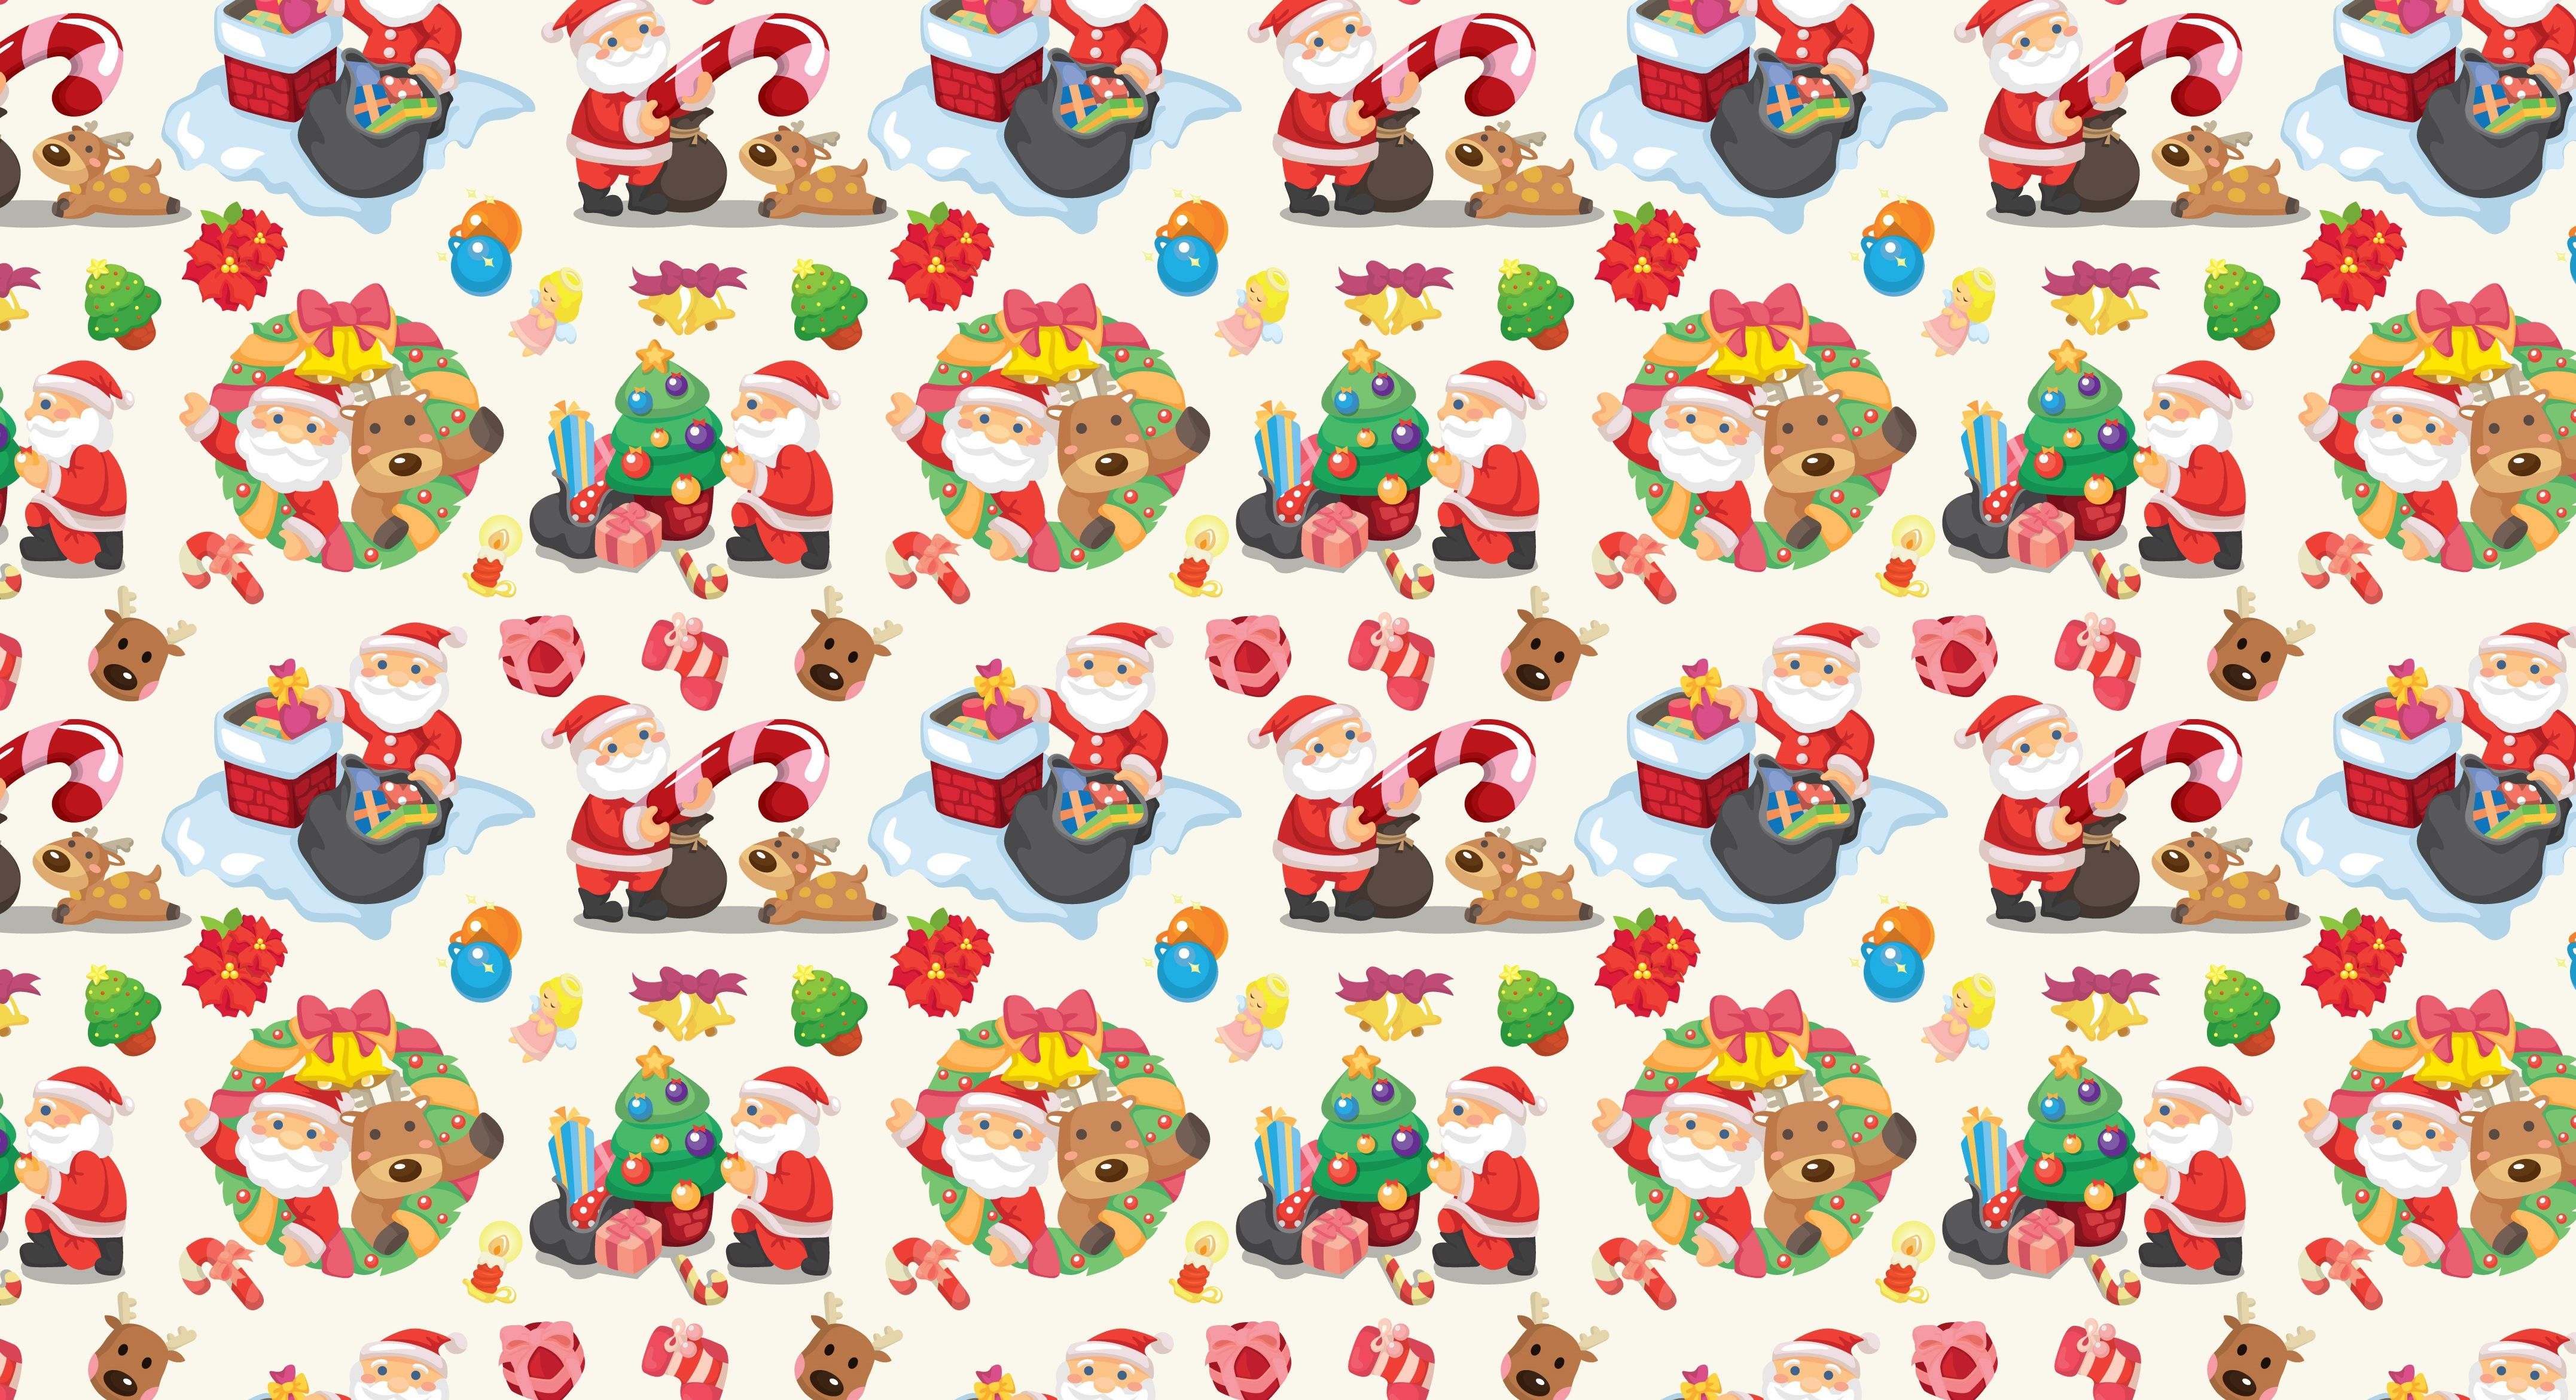 Pin By Rina Riss On Ny Anton Vintage Christmas Wrapping Paper Christmas Wrapping Paper Christmas Wrapping